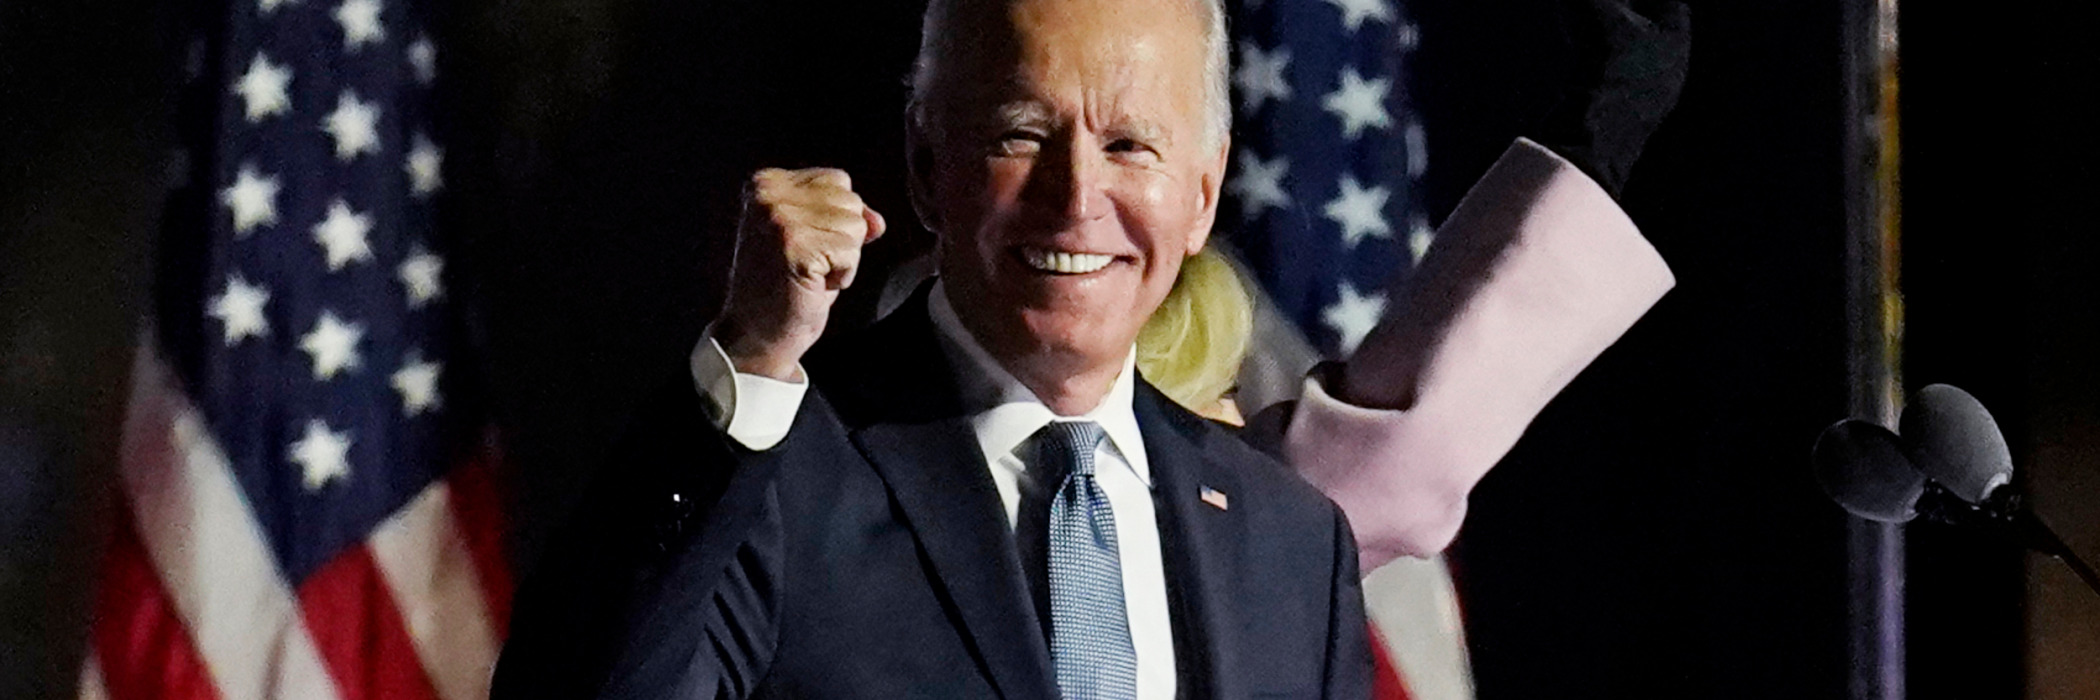 Hope for climate protection: Joe Biden